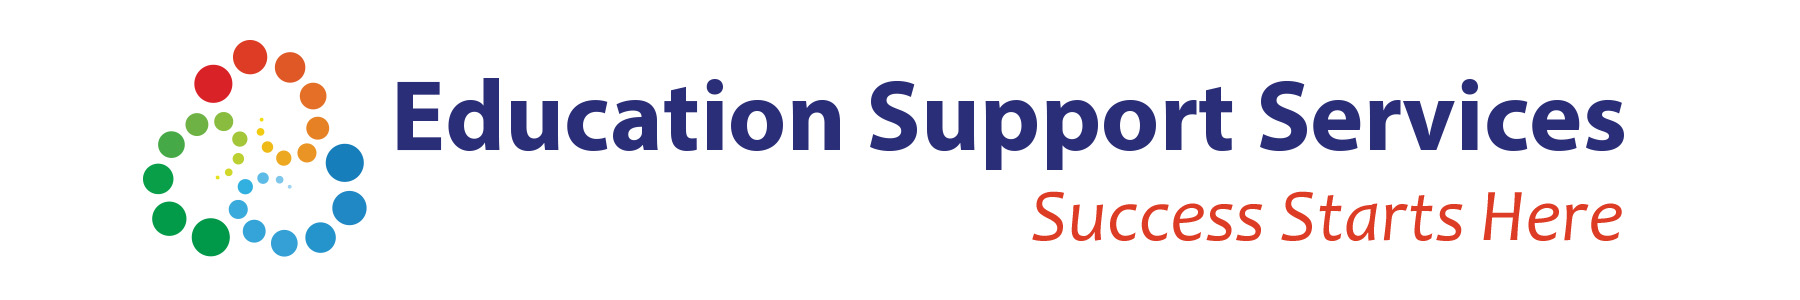 Education Support Services